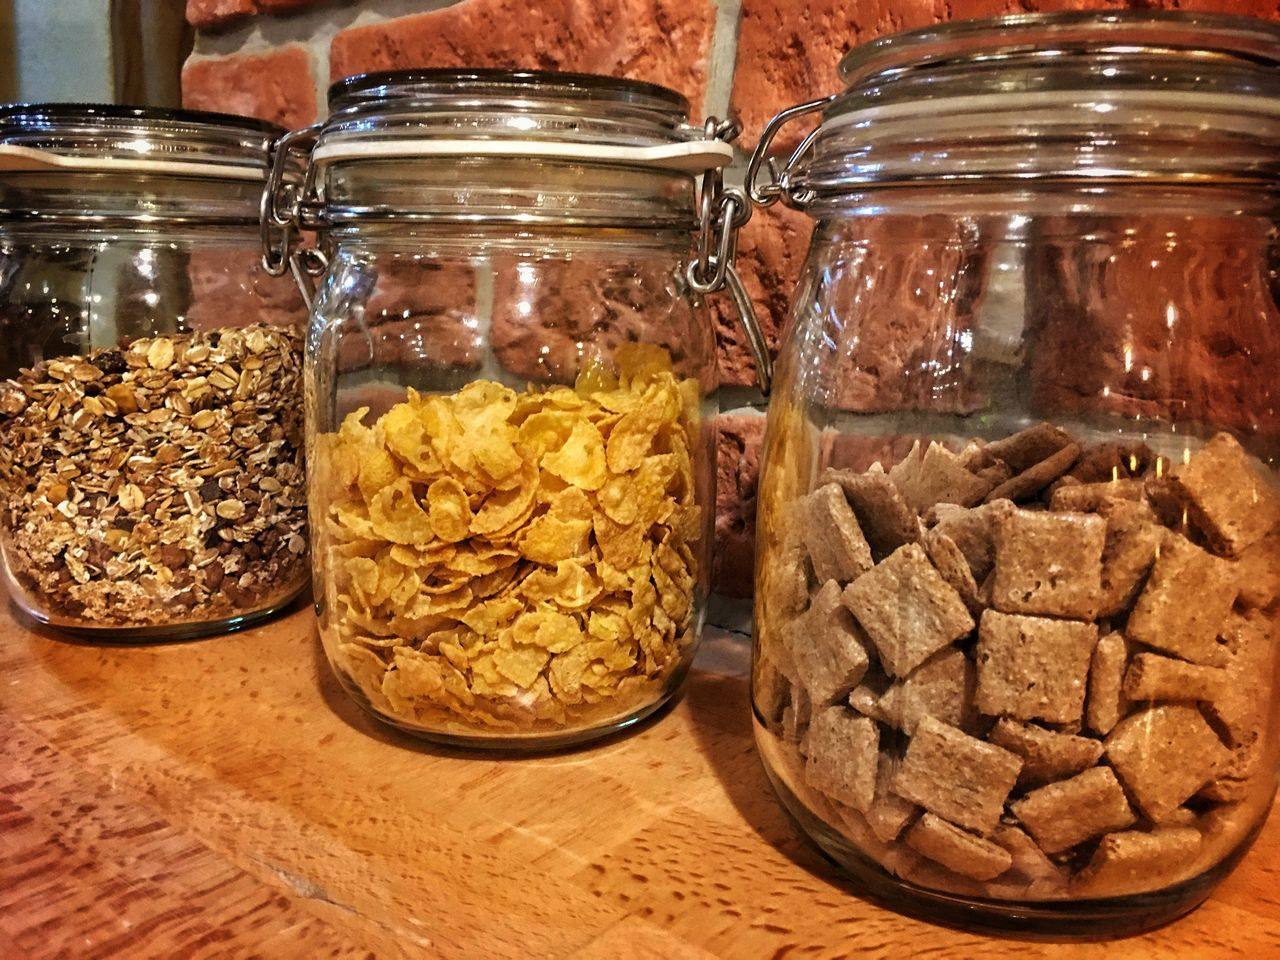 Three jars with cornflakes and müsli for breakfast Jar Food Food And Drink Variation Close-up No People Indoors  Mealtime Meal Hungry Eat Eating Cornflakes Müsli Breakfast Breakfast ♥ Breakfast Time Jars  Glasses Day Freshness Indoors  Inside Shining